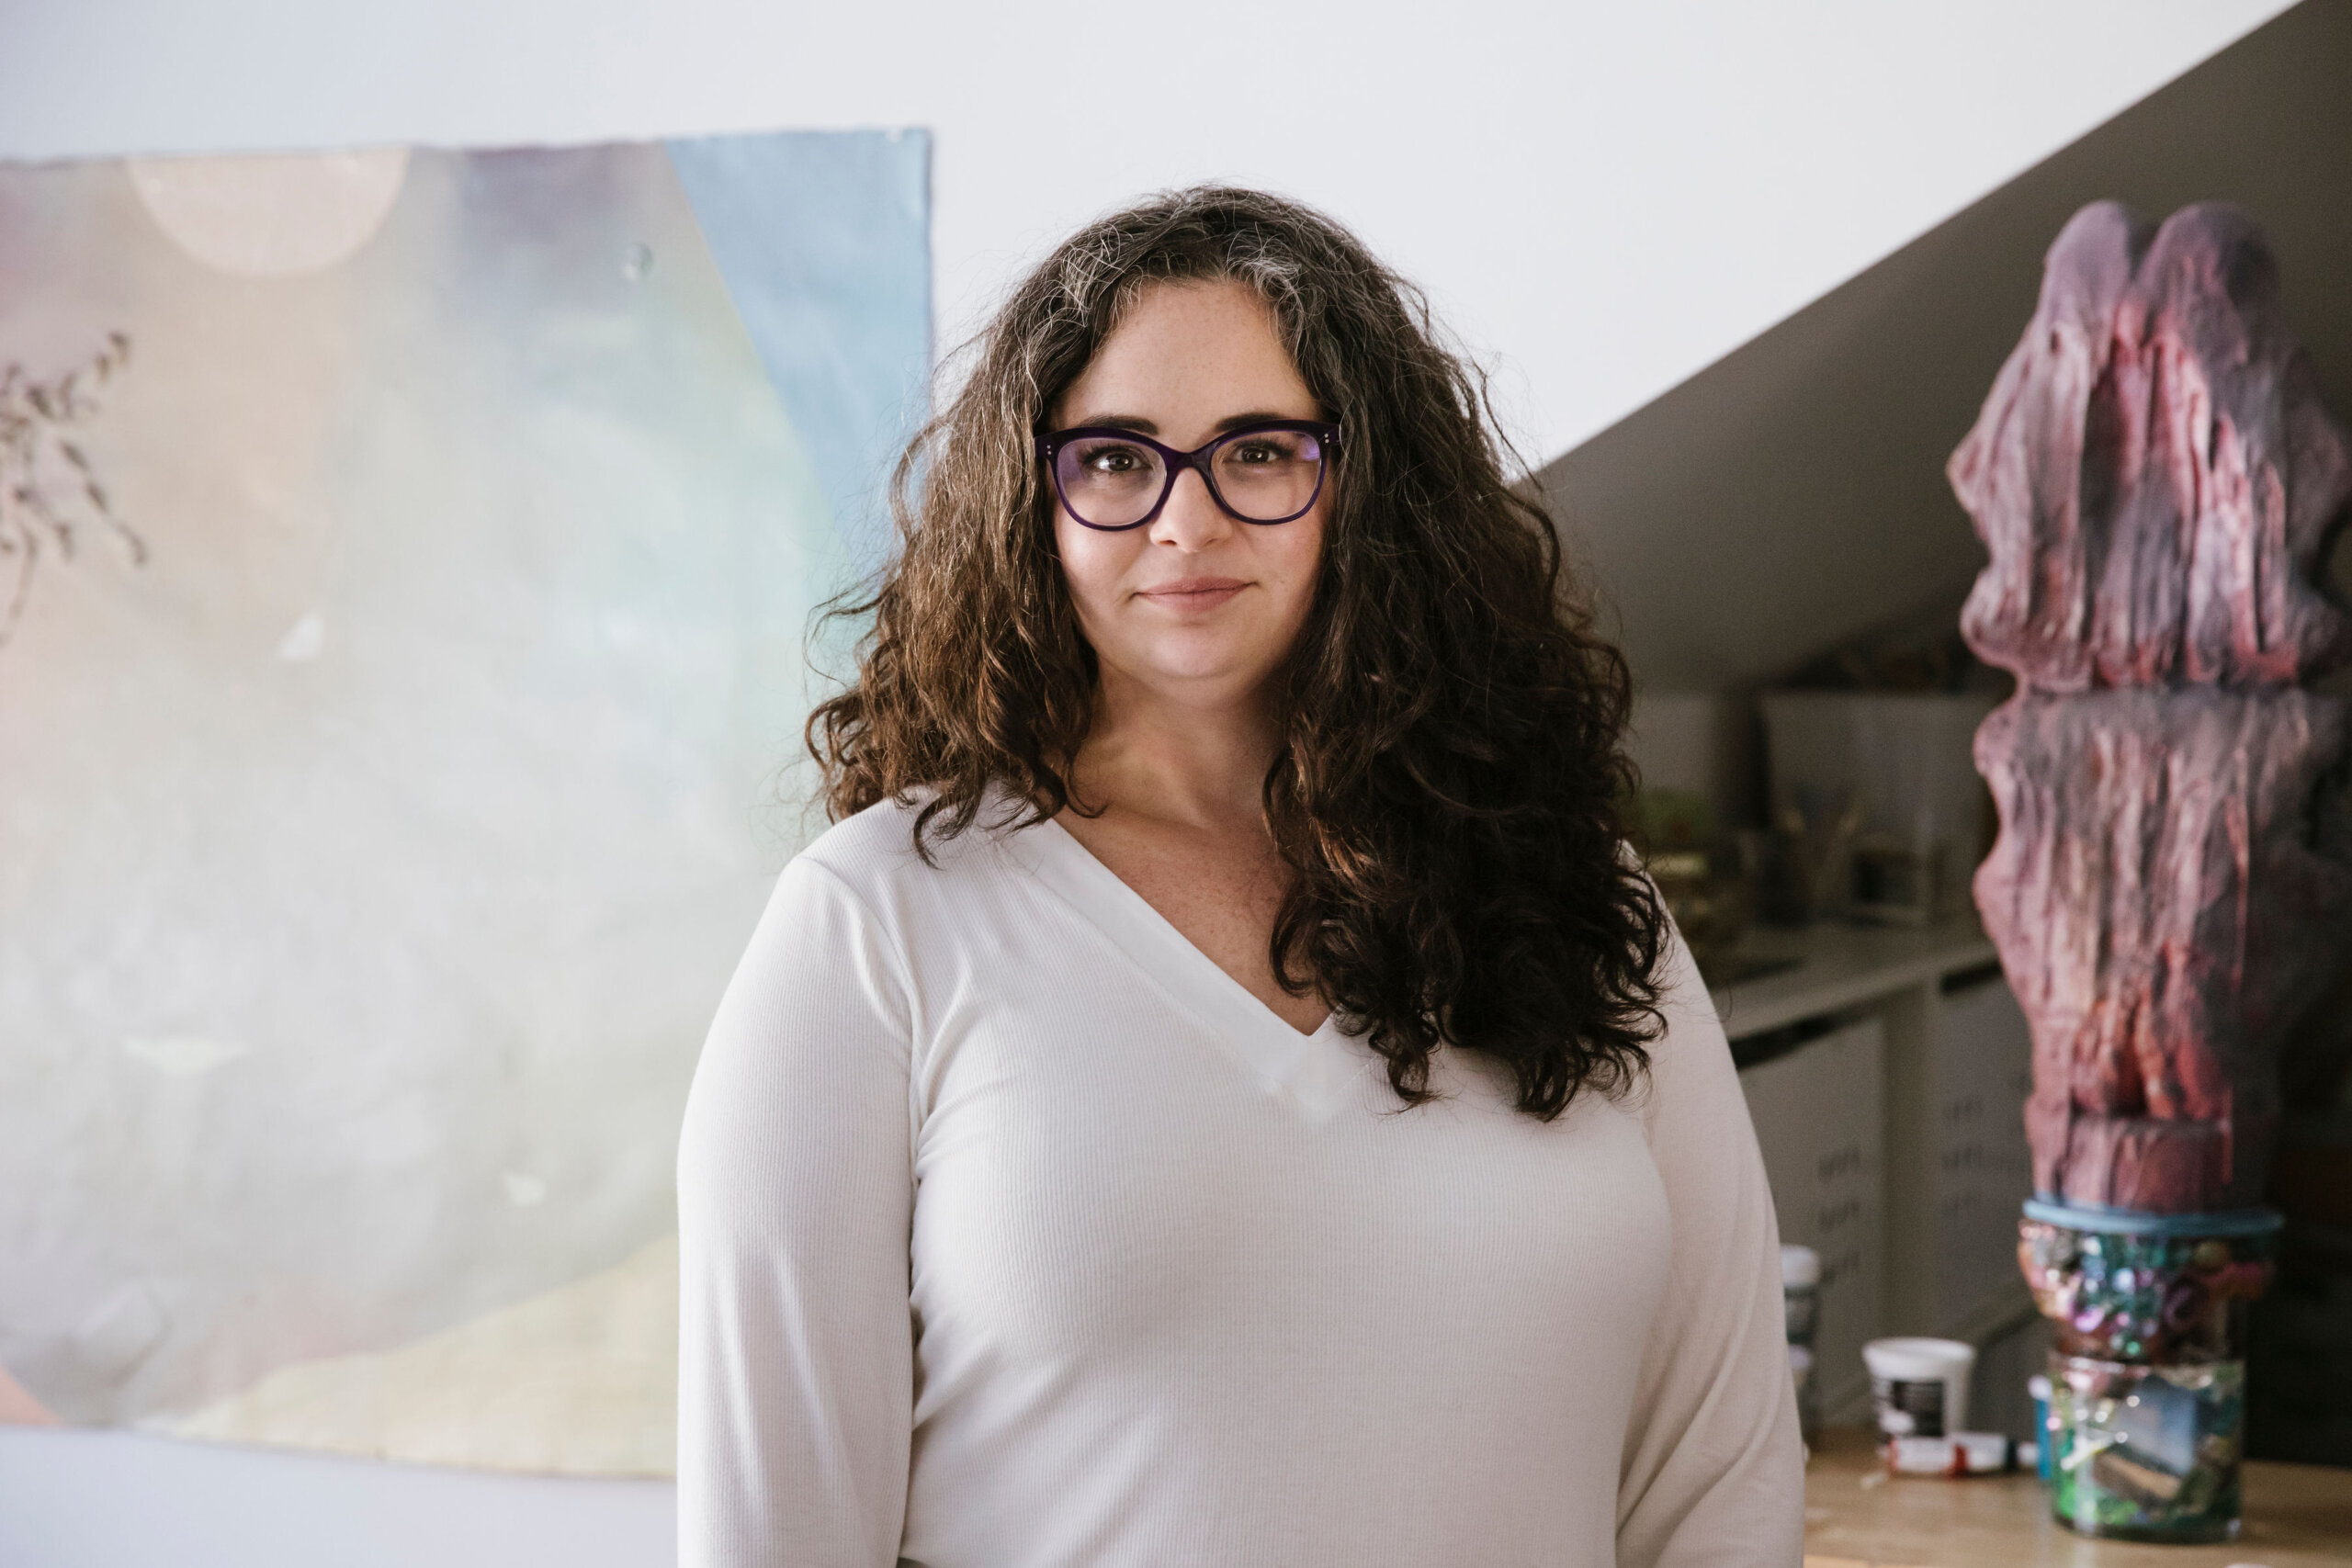 Rachel Klinghoffer artist portrait with family at her studio in South Orange, New Jersey.